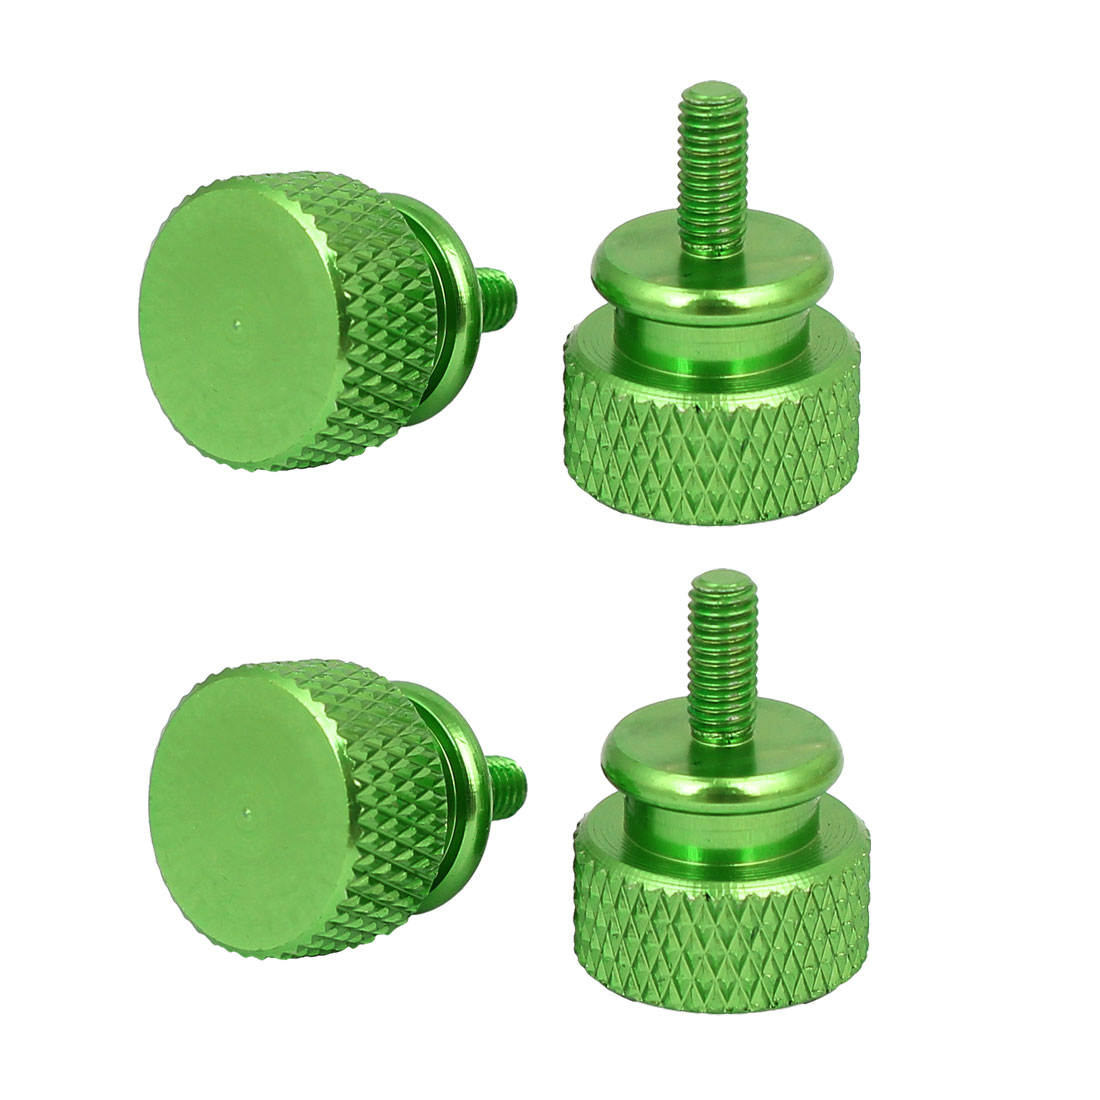 Computer PC Case Aluminum Alloy Knurled Thumb Screws Green M3x7mm 4pcs